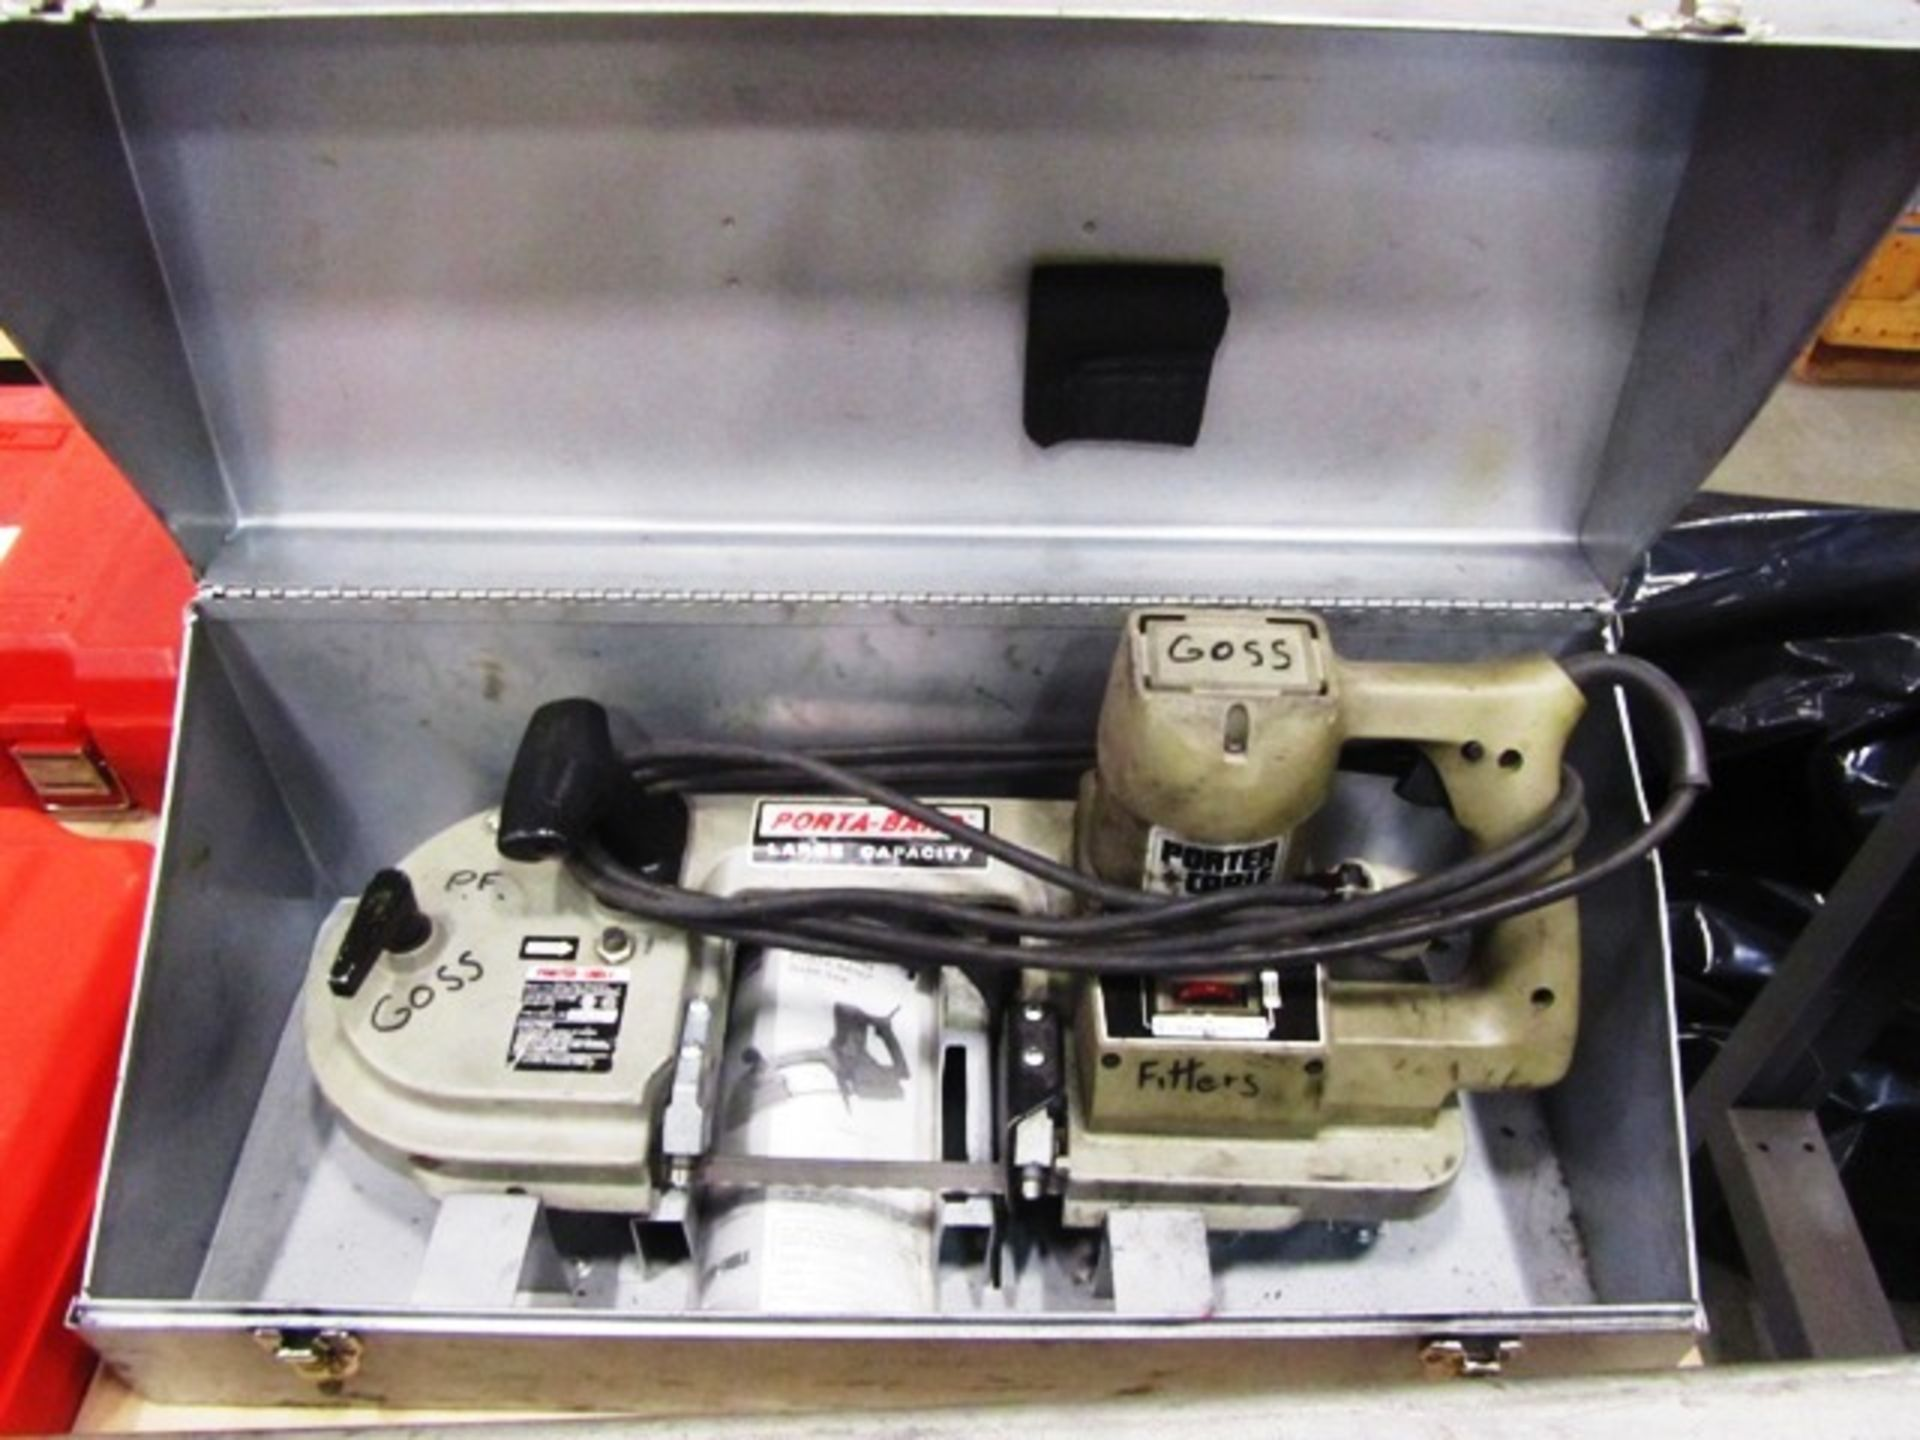 Porter-Cable Electric Portable Horizontal Band Saw